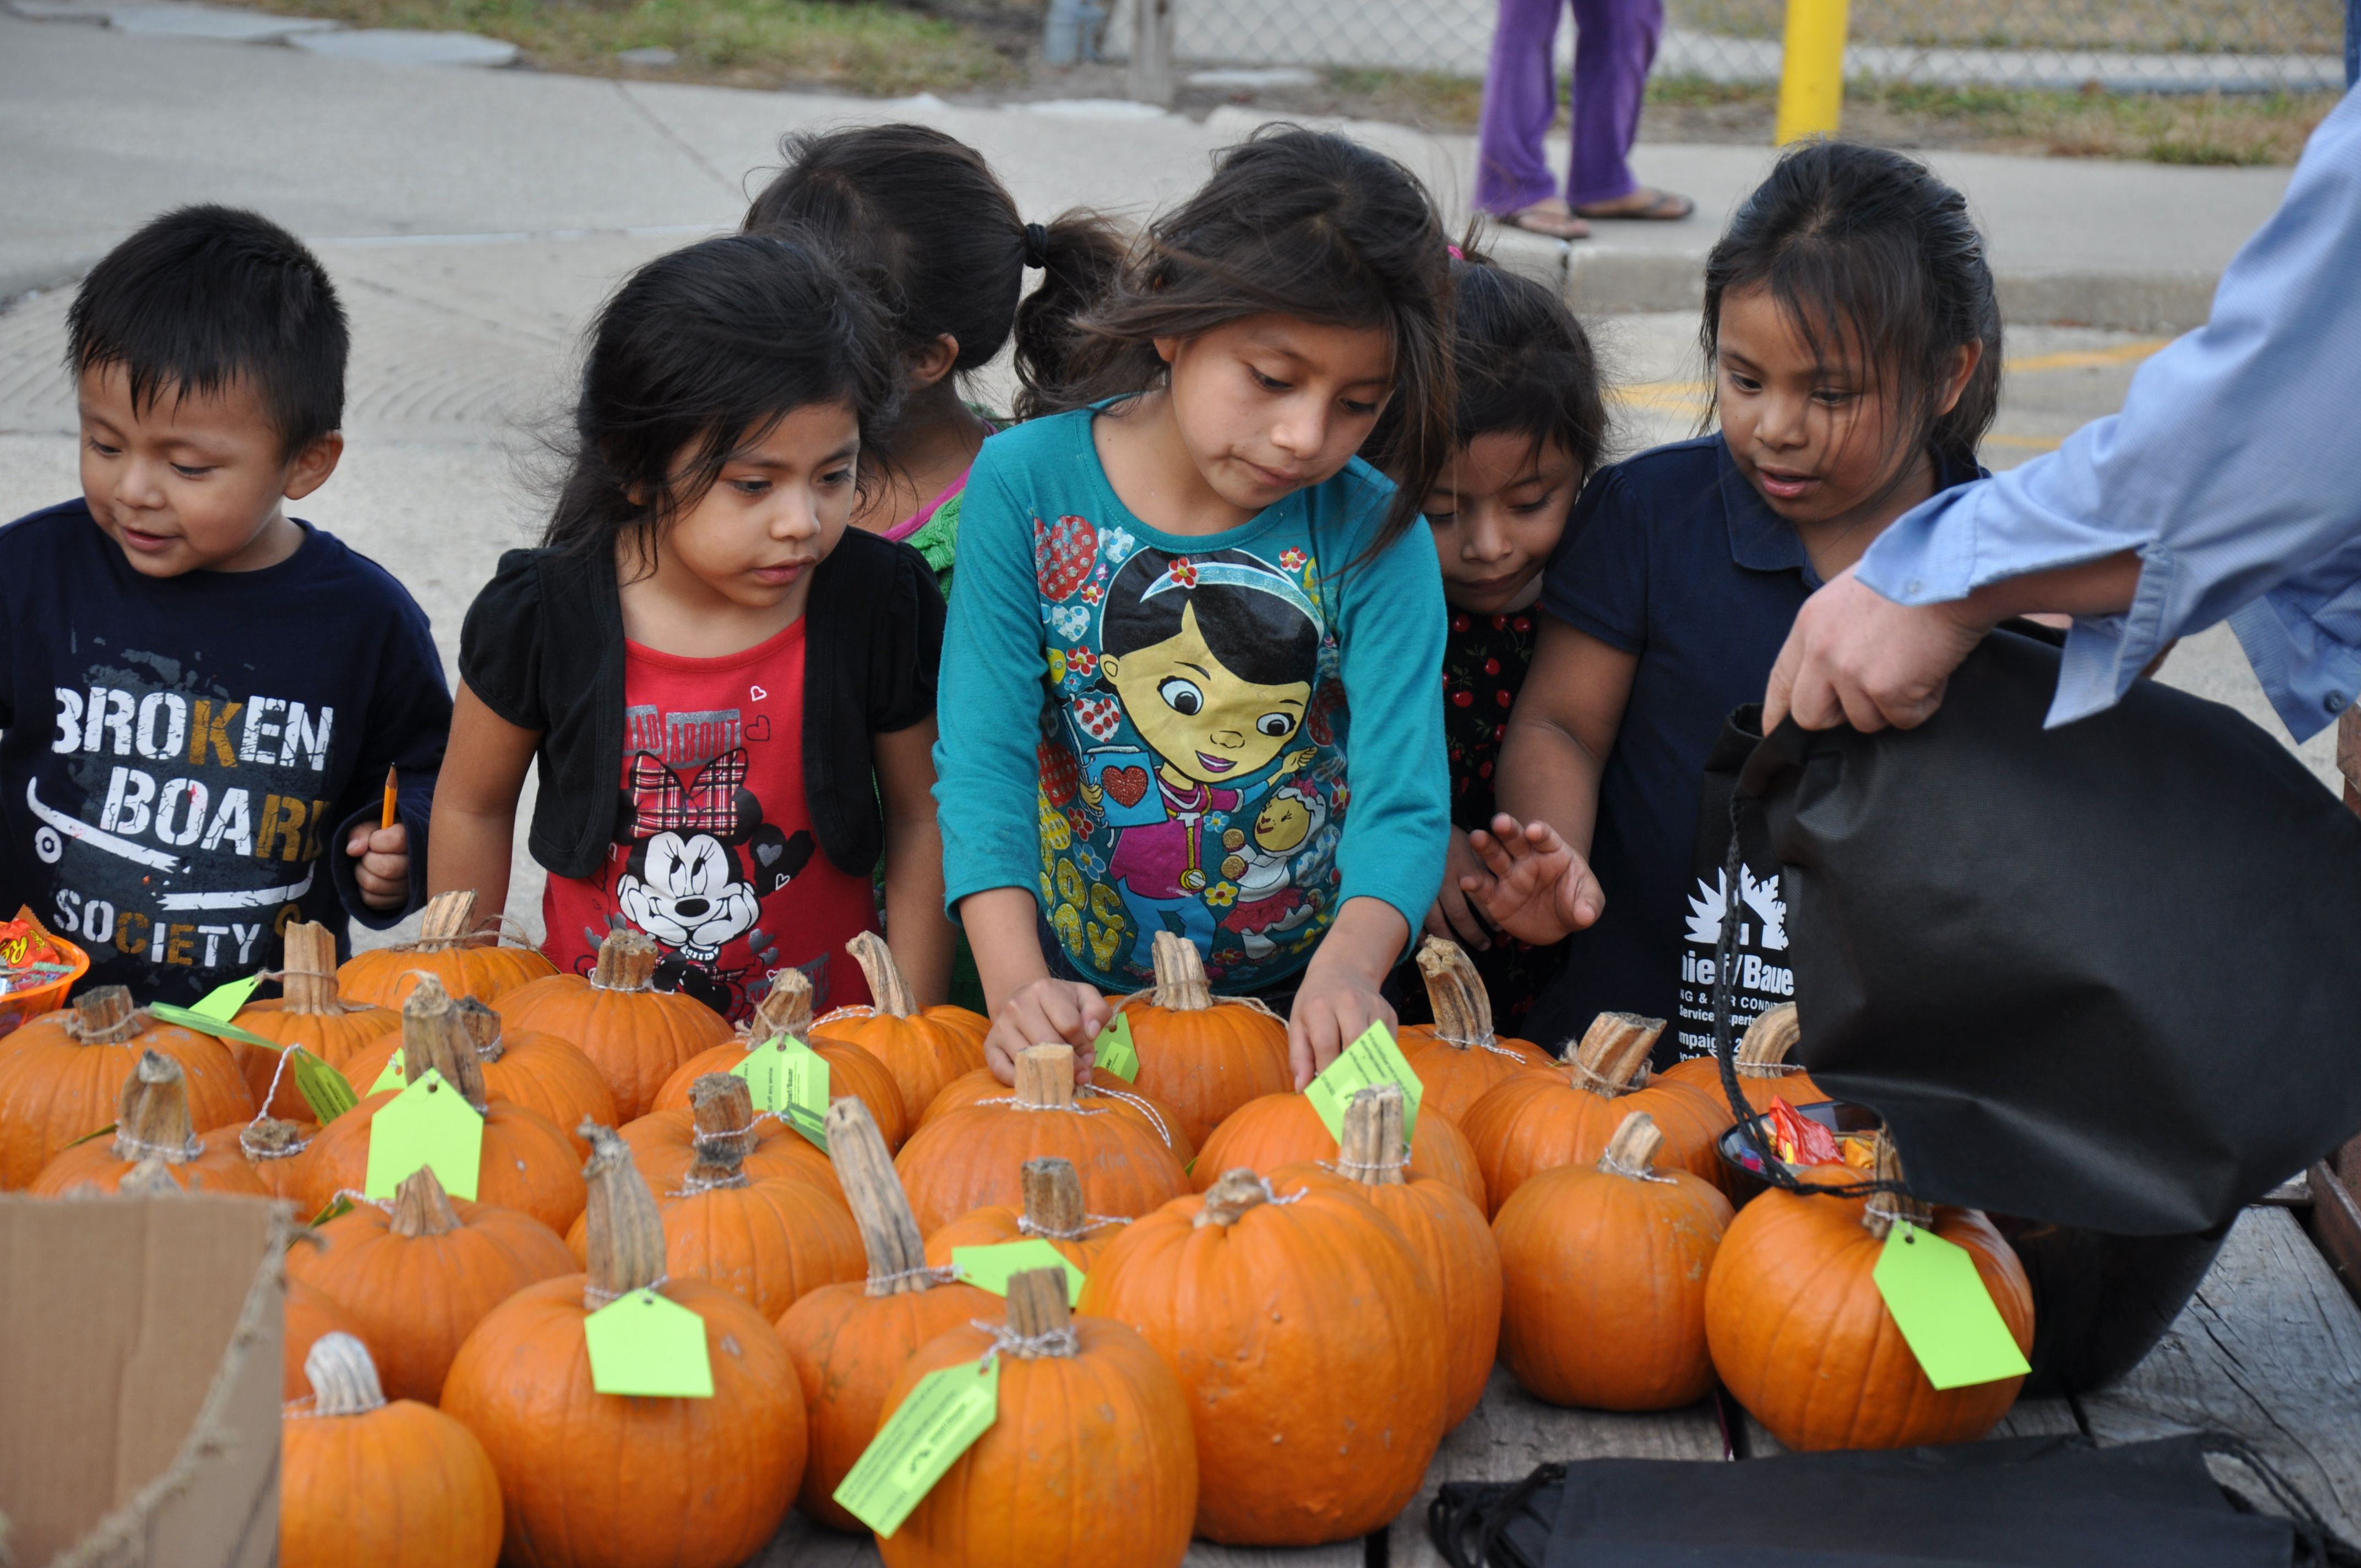 Chief Bauer Service Experts Gave Away More Than 100 Pumpkins And